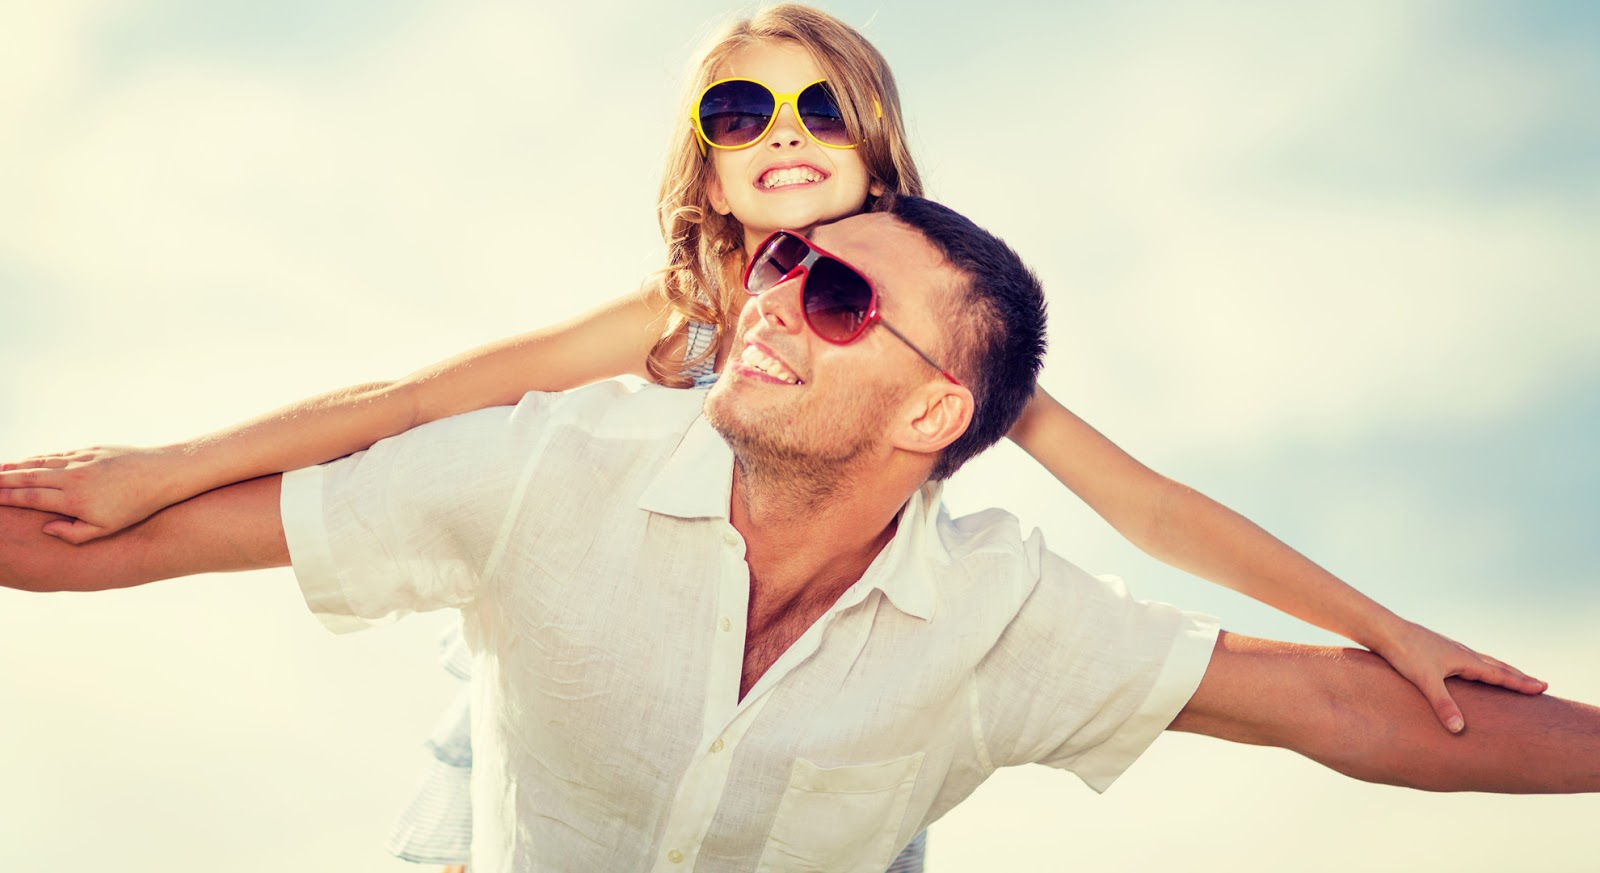 Fathers Day Gift Idea-Sunglasses